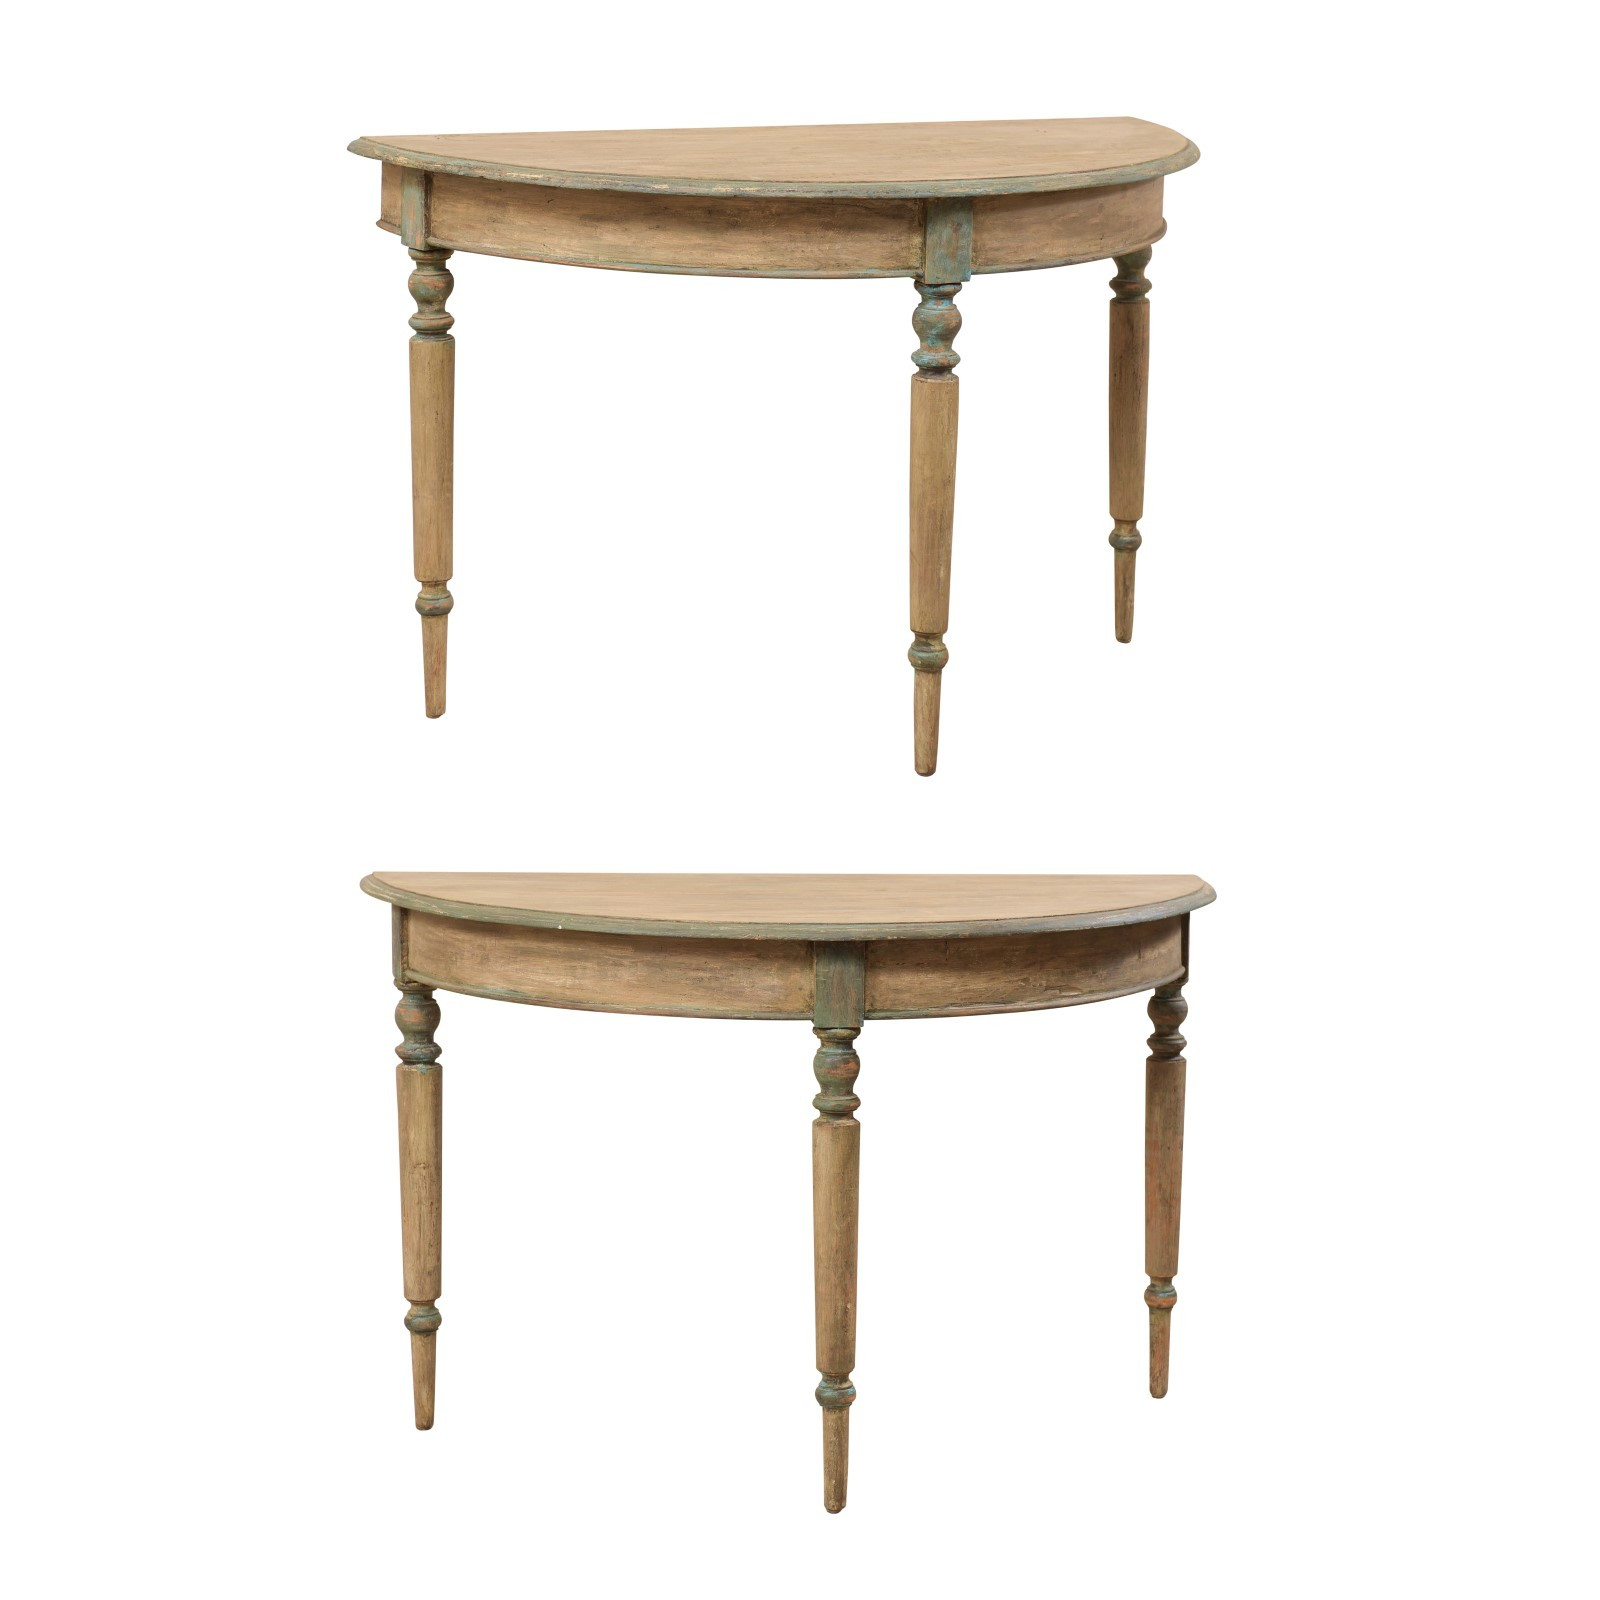 Pair 19th C. Painted Demilune Tables